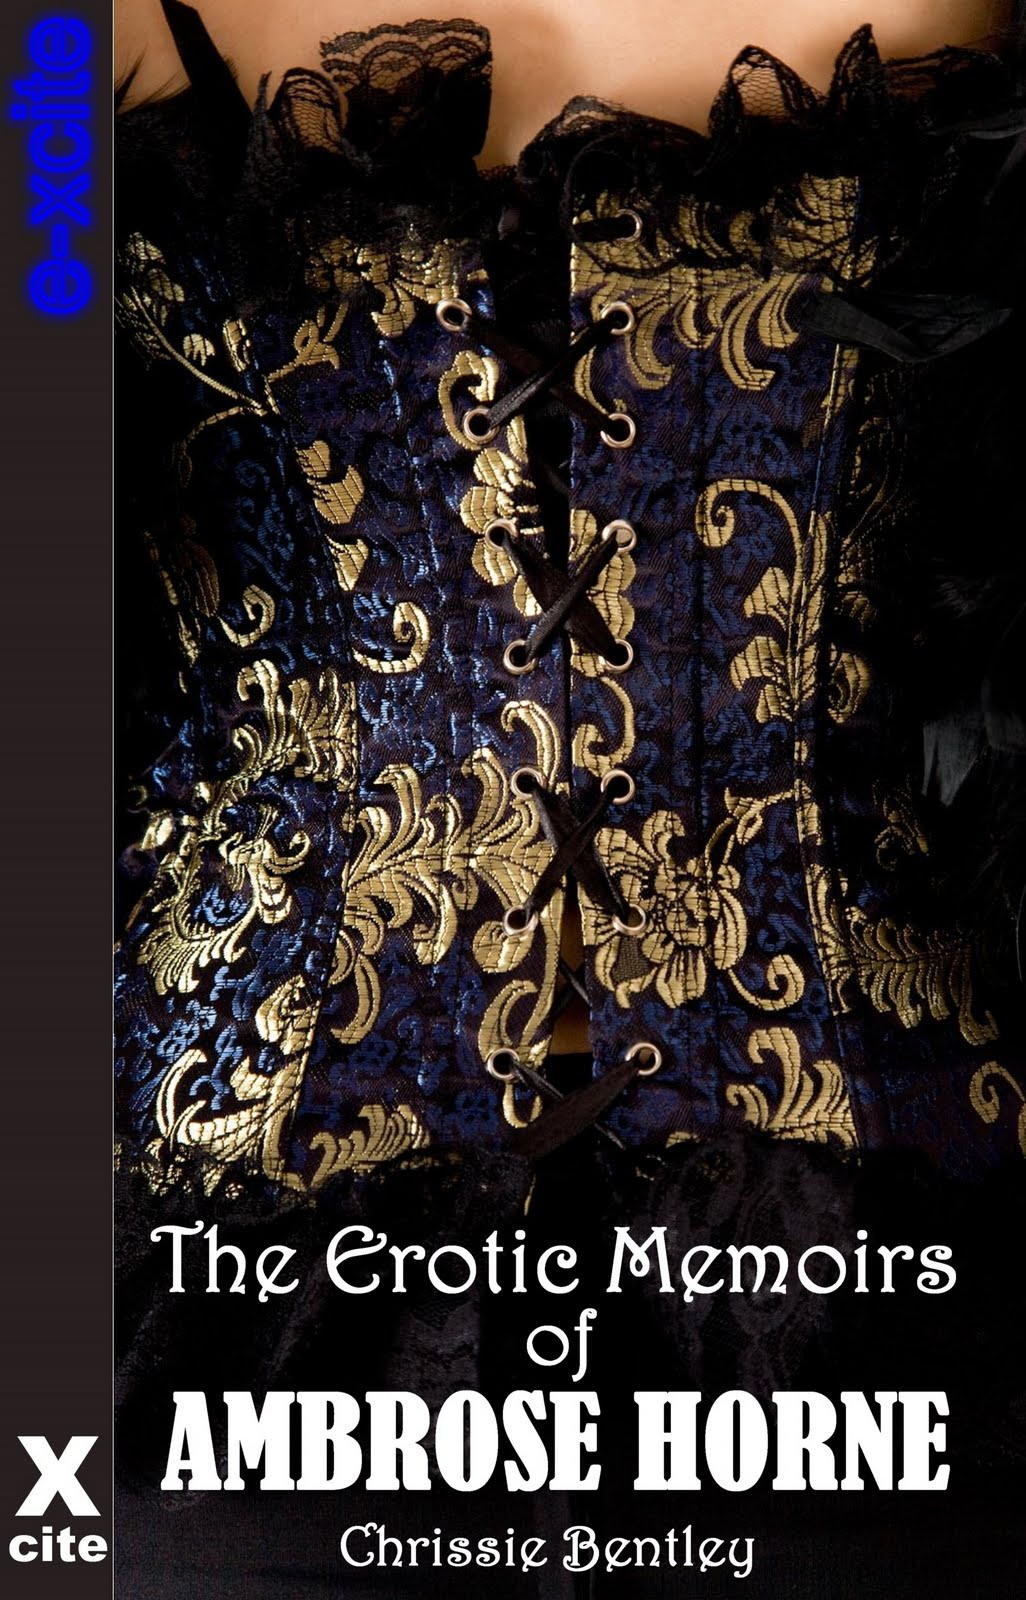 Erotic%252520Memoirs%252520low%252520res For the benefit of those readers who are new to my erotic stories ...